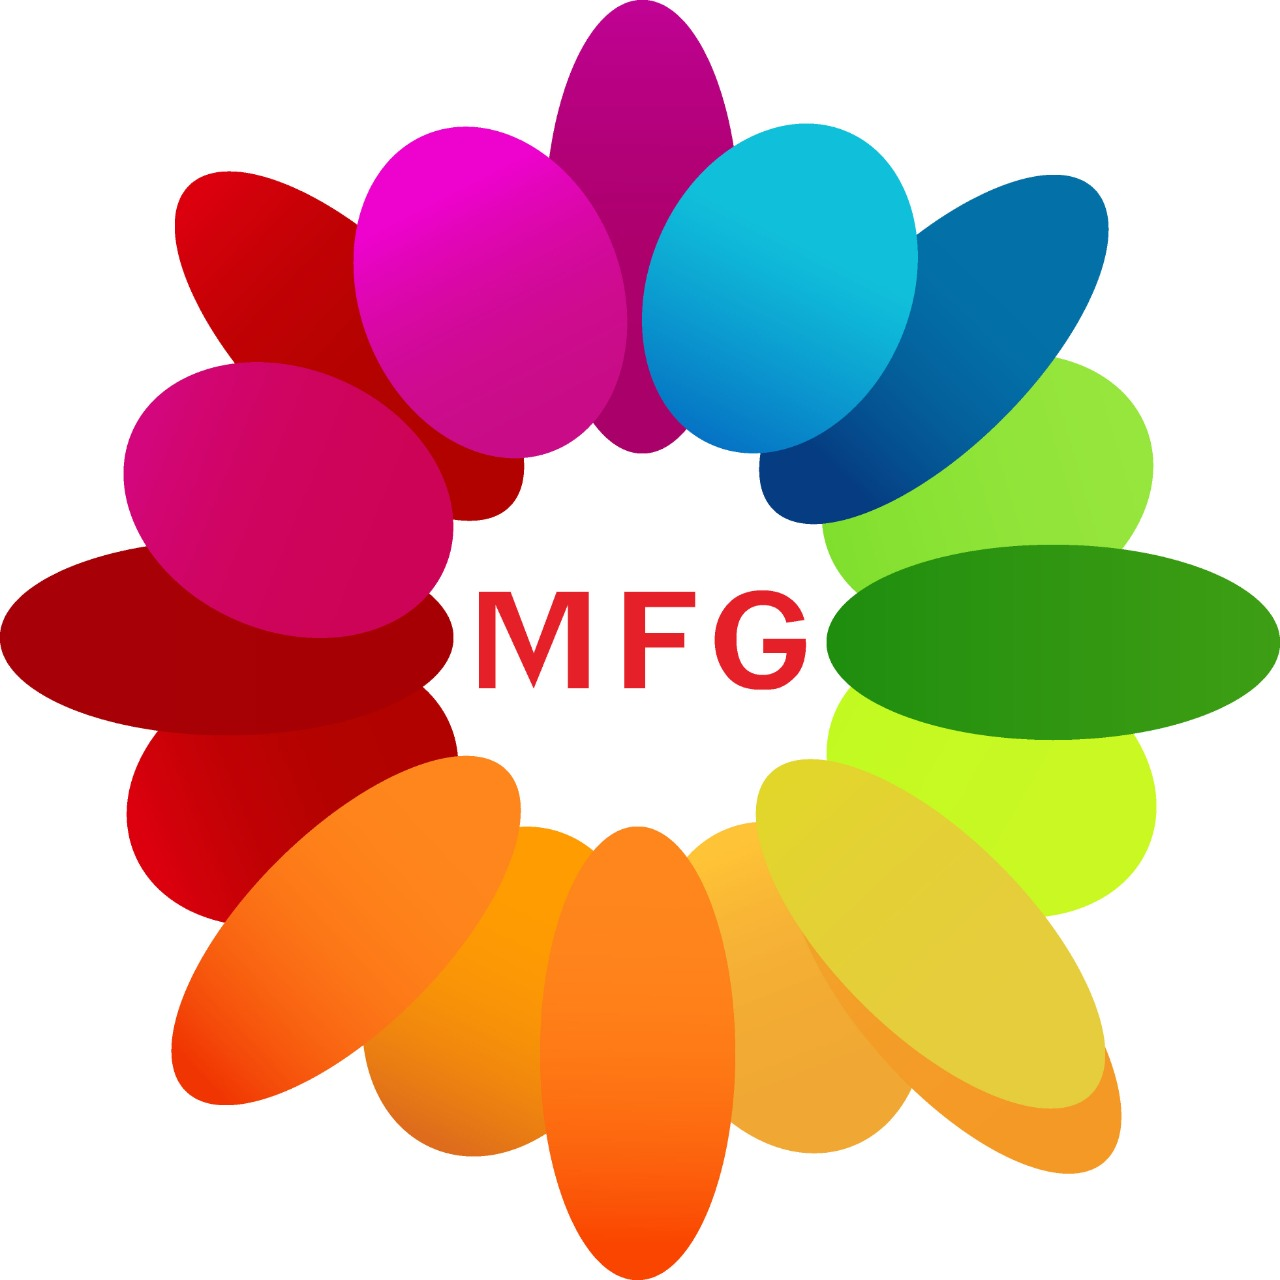 Exotic and classic chocolate bouquet of 60 pieces of ferrero rocher chocolates